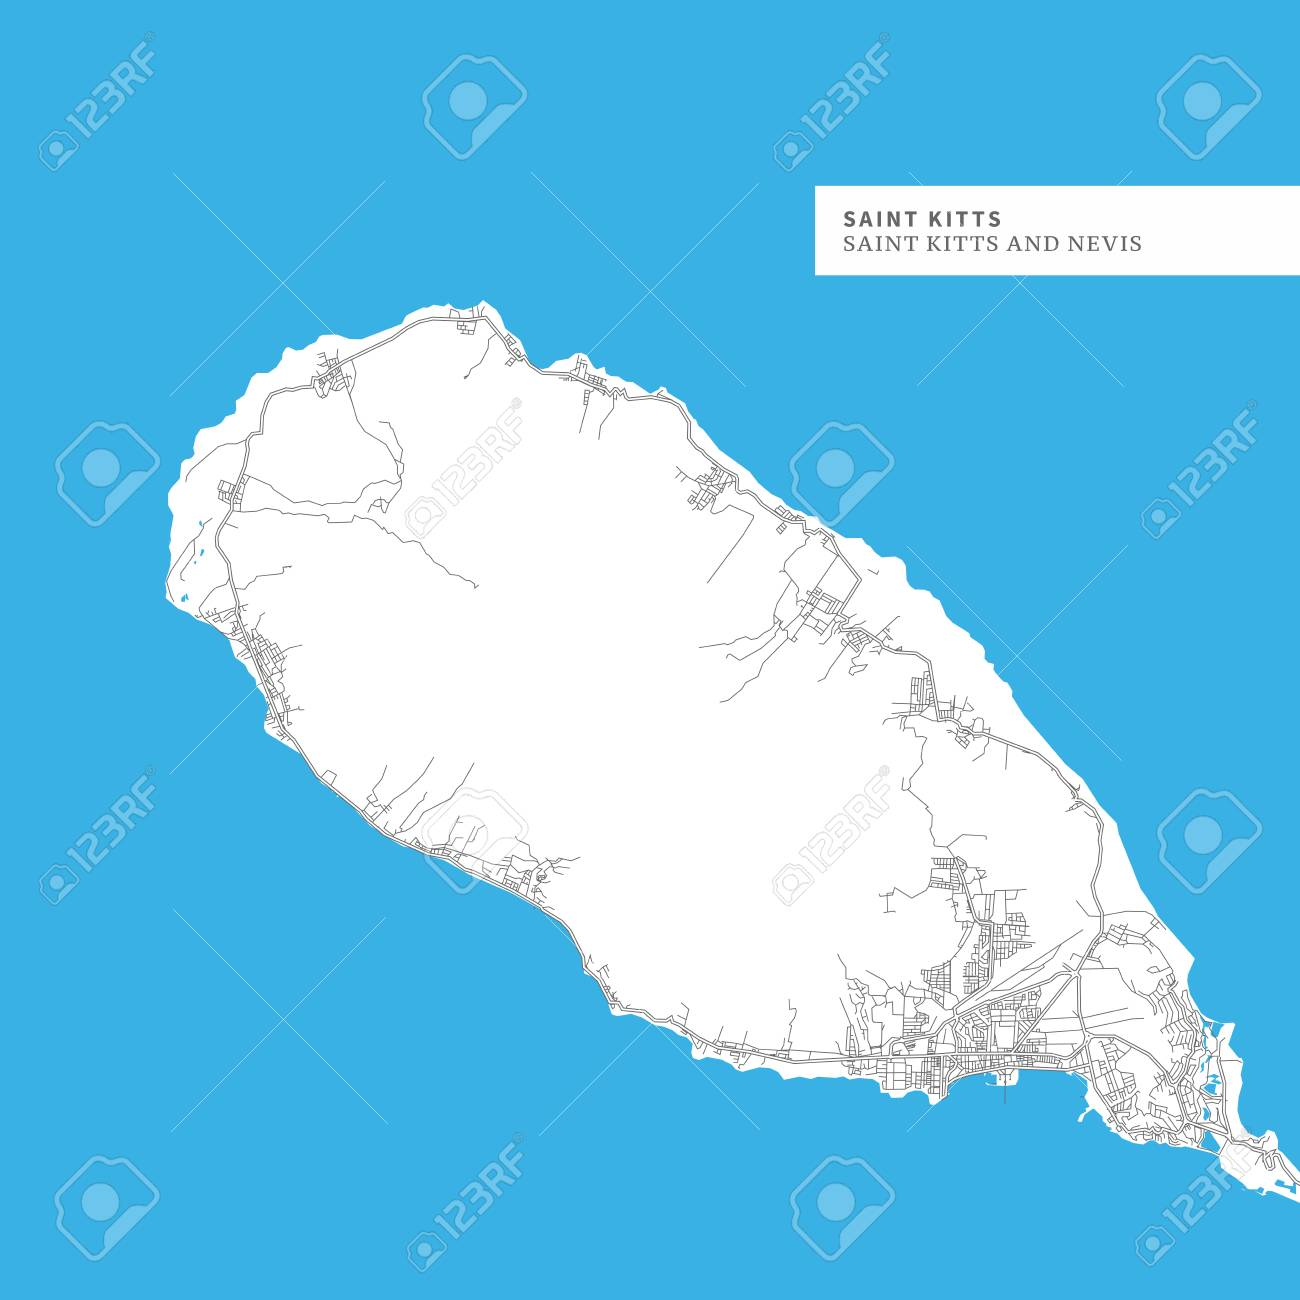 Saint Kitts And Nevis Map on ukraine map, senegal map, albania map, montenegro map, redonda map, slovenia map, anglosphere map, svalbard and jan mayen map, caribbean map, yisrael map, monaco map, tokelau map, timor-leste map, lesotho map, virgin islands map, nevis island map, south georgia and the south sandwich islands map, serbia map, nevis on world map, singapore map,